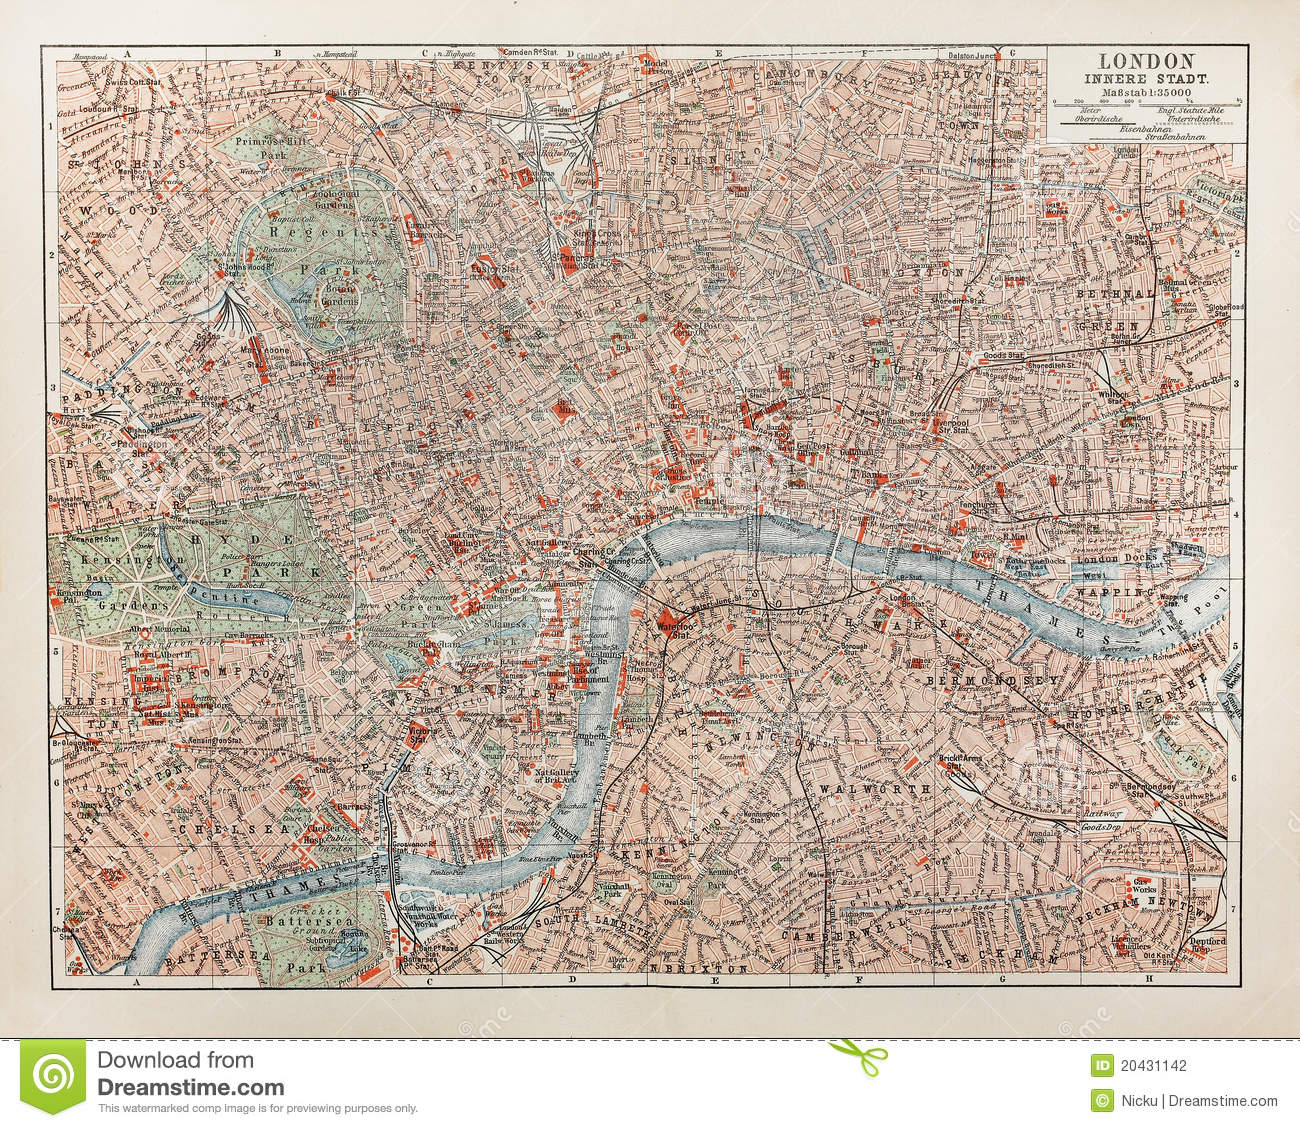 Old paris street map royalty free stock photo image 15885665 - London Old Map Stock Photography